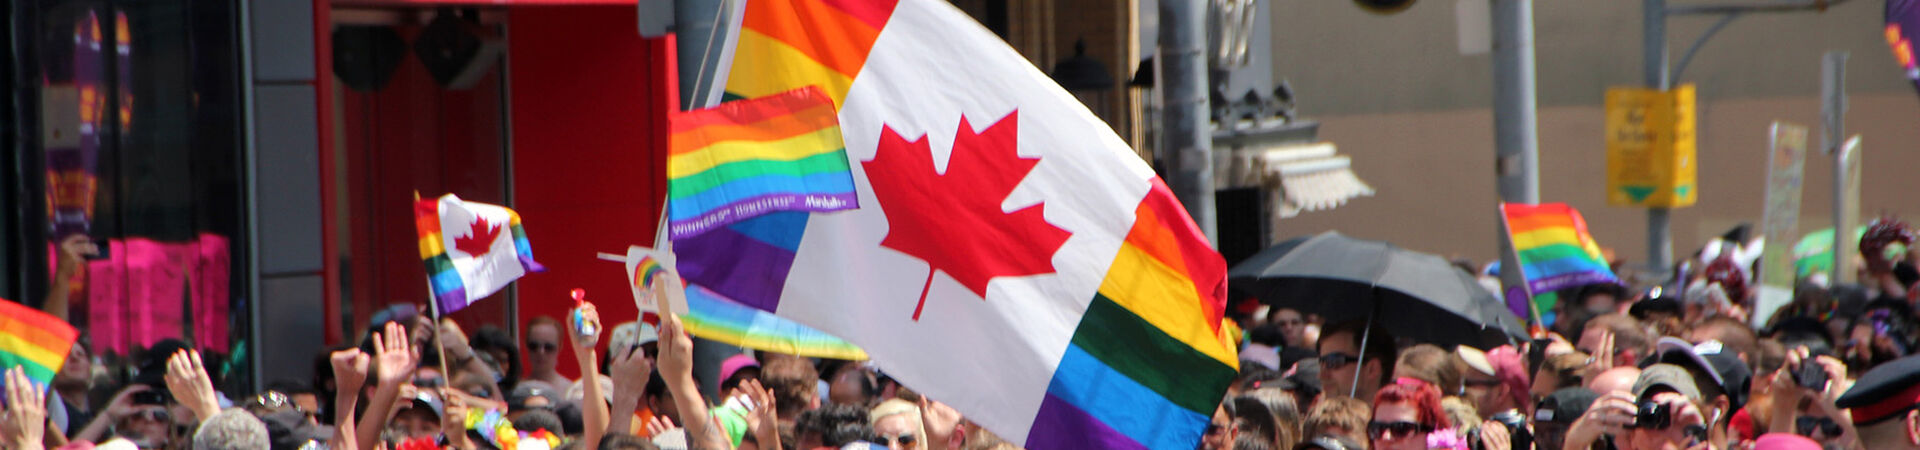 Banner - End Conversion Therapy for Minors in Canada